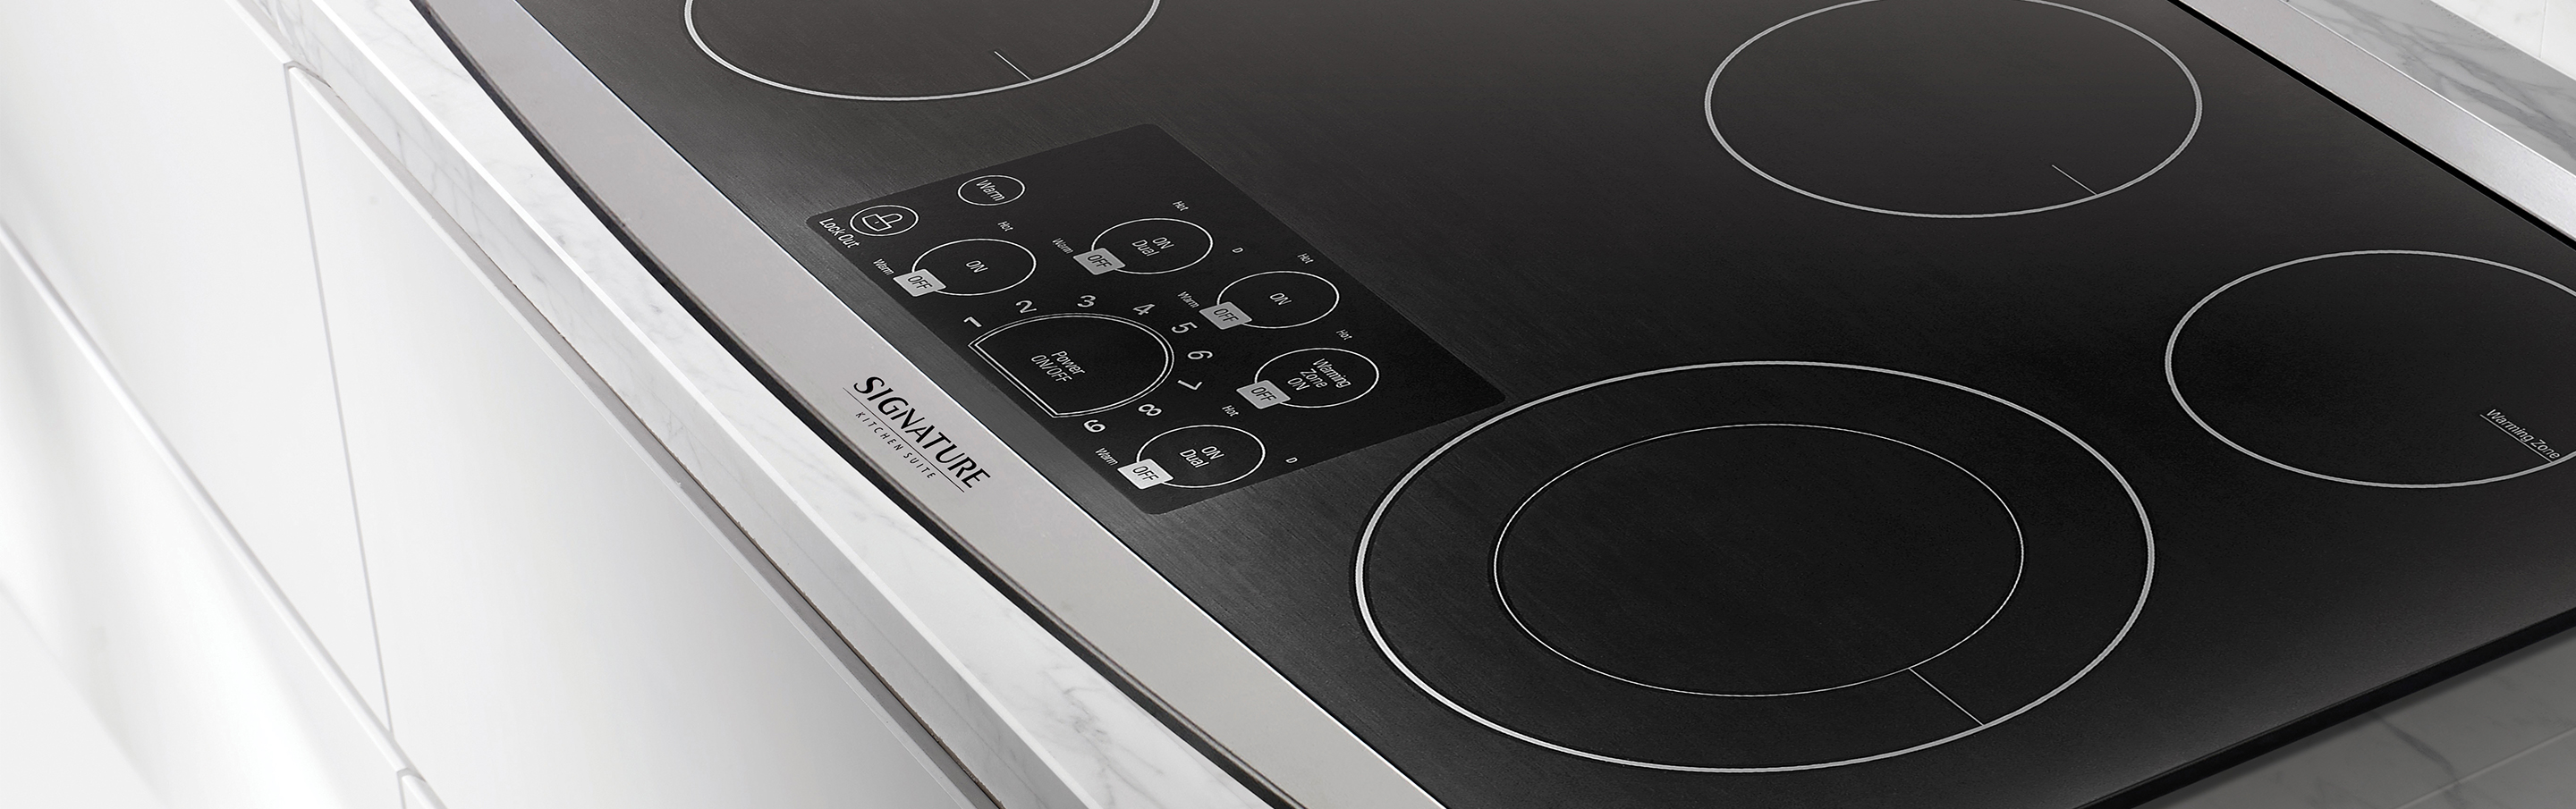 30-inch Electric Cooktop by Signature Kitchen Suite